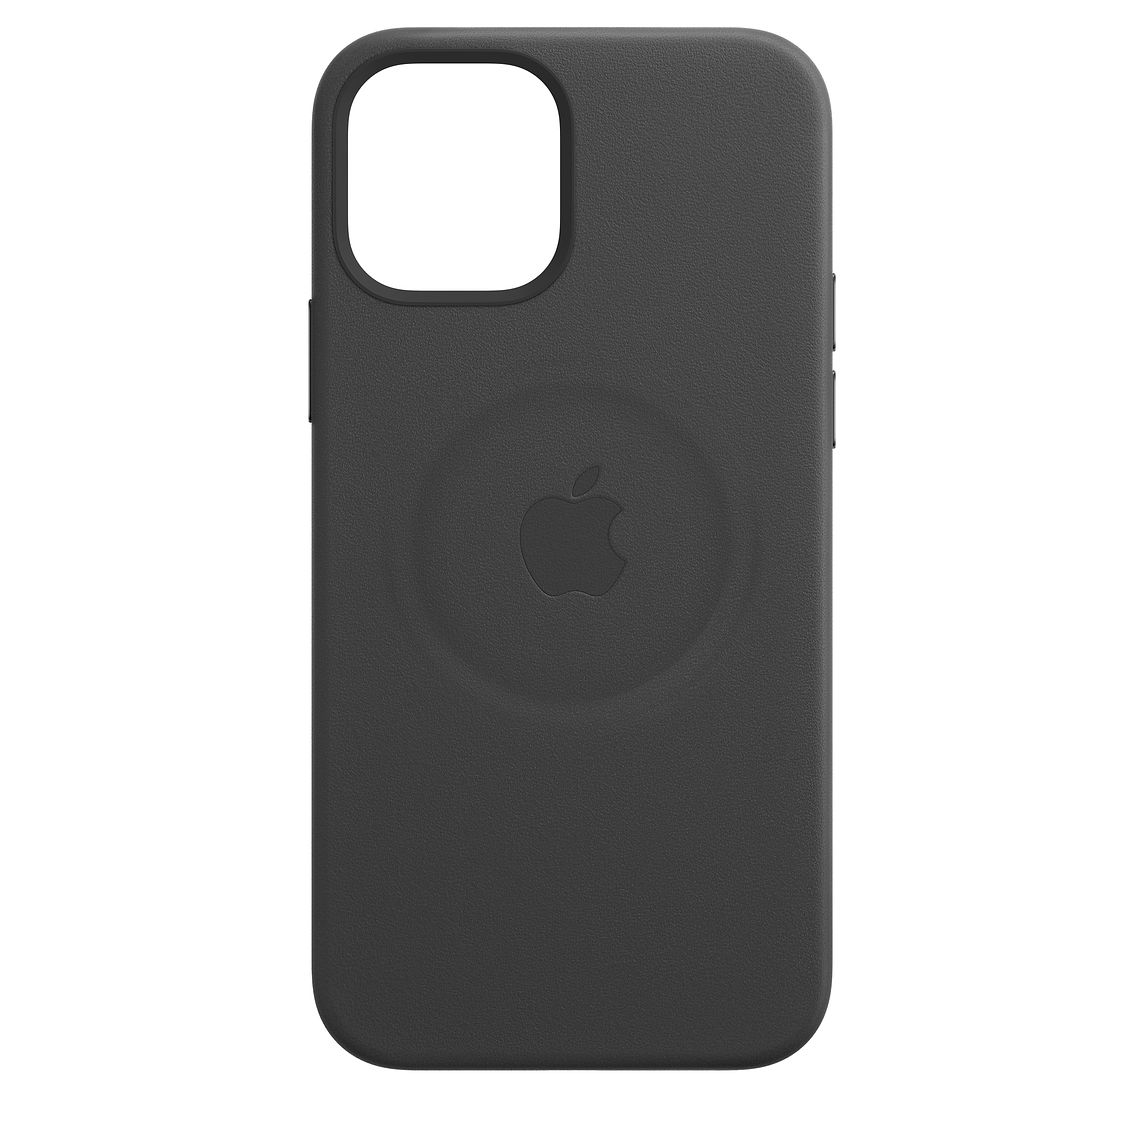 - iPhone 12 Pro Max Leather Case with MagSafe / Negro 1